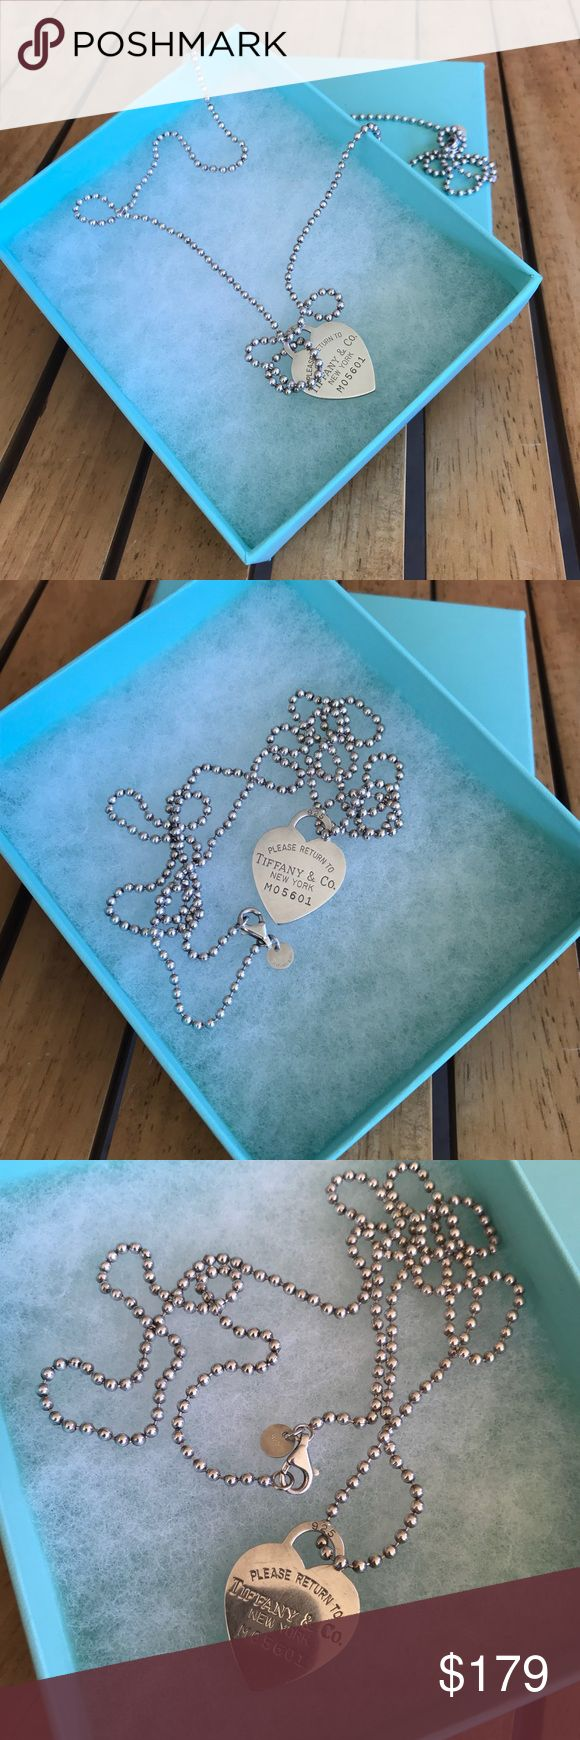 Tiffany heart necklace Pre-owned 100 % Authentic tiffany heart necklace. In very used good condition. Has sign of usage. Has mild scartches. Has 34 inches long. Comes with box no pouch. Please check all the pictures before purchasing. Tiffany & Co. Jewelry Necklaces